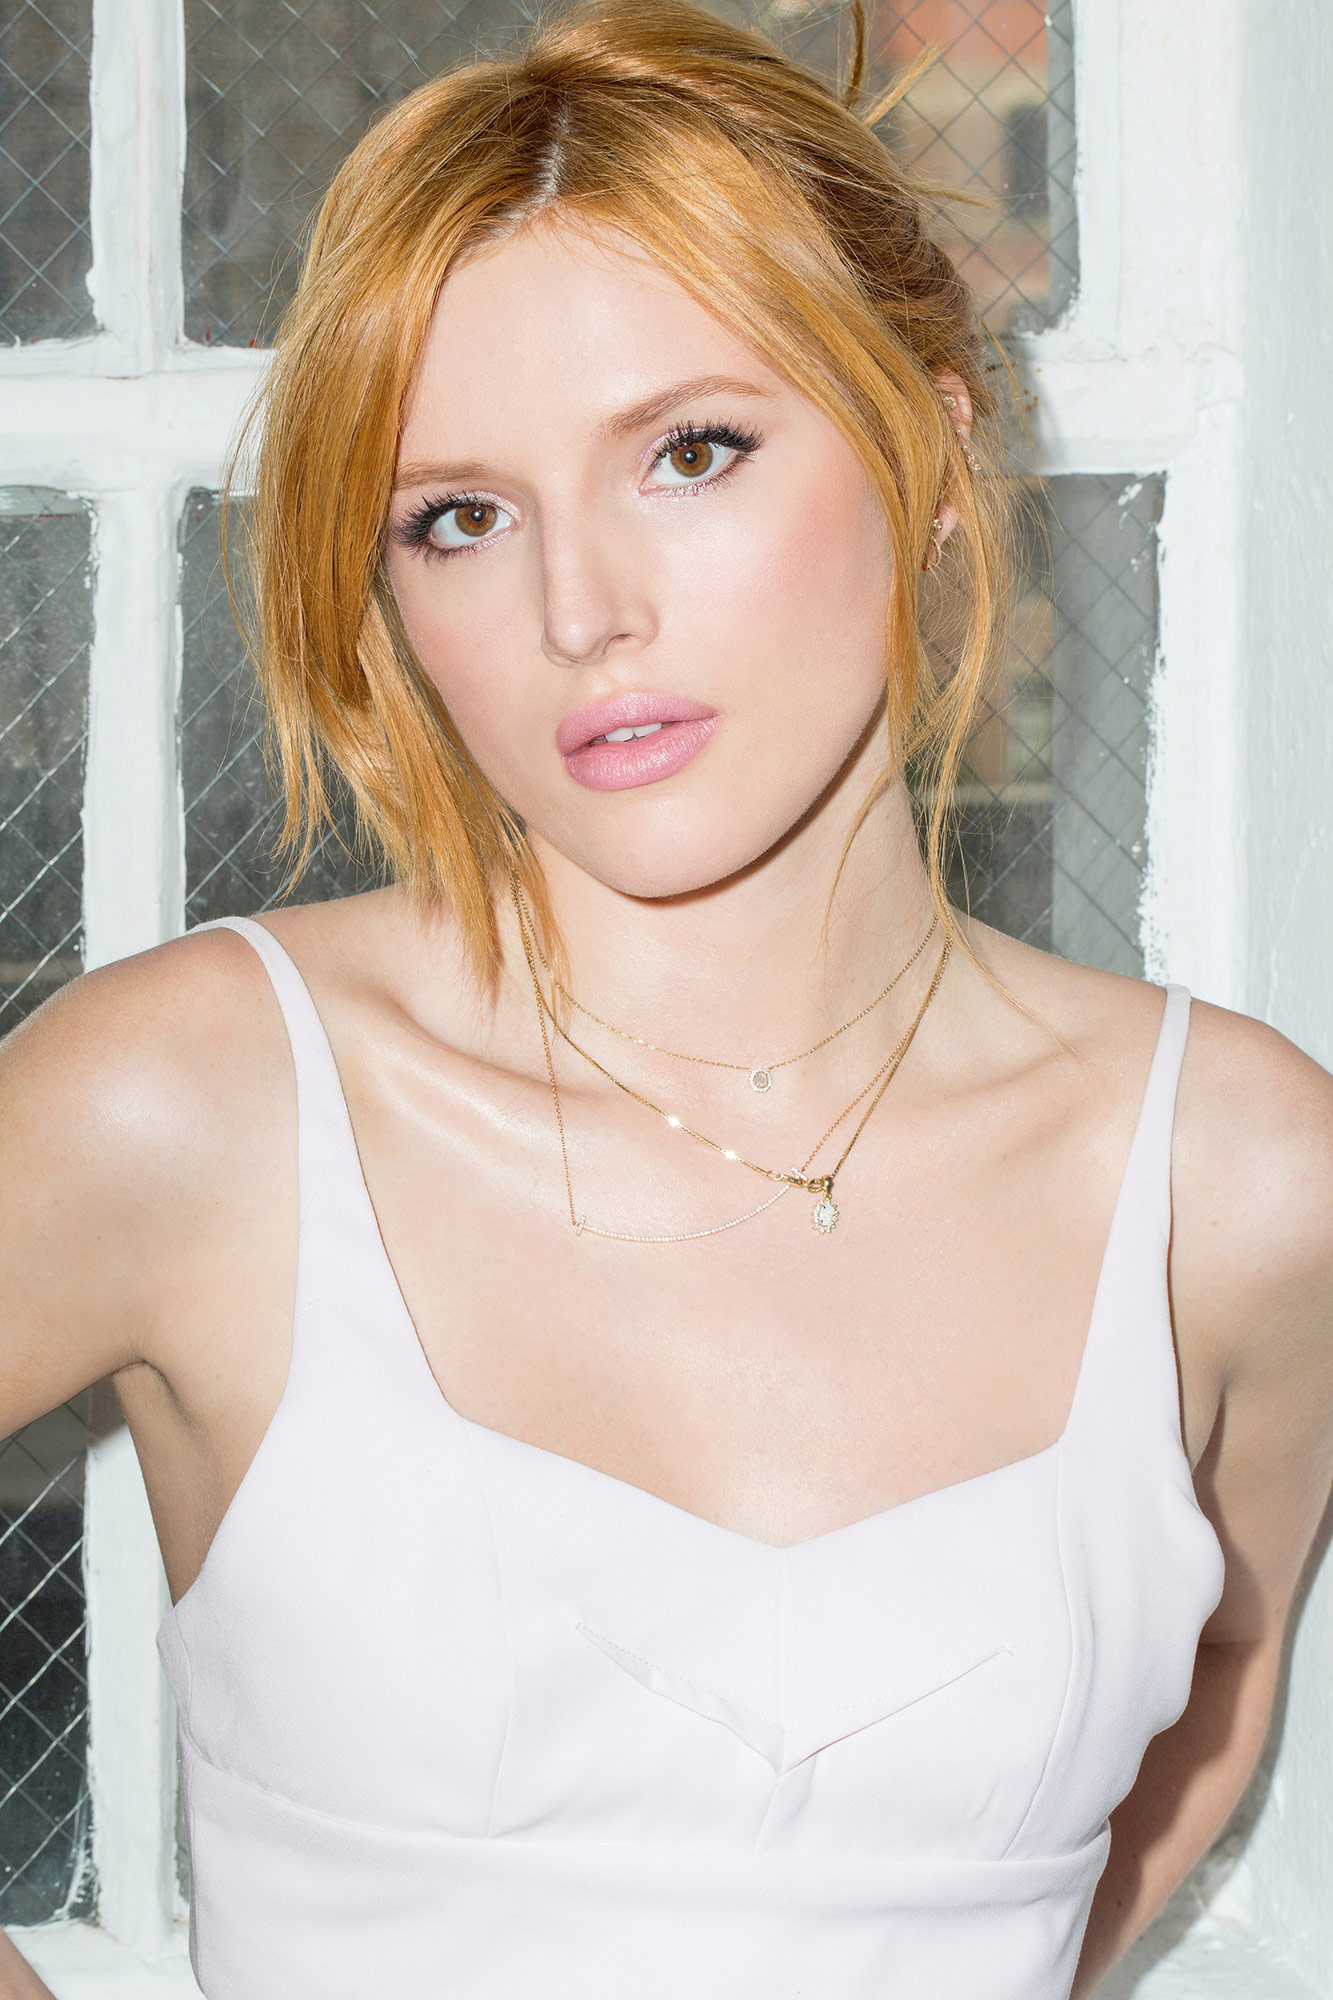 Bella Thorne photoshoot for Yahoo Beauty